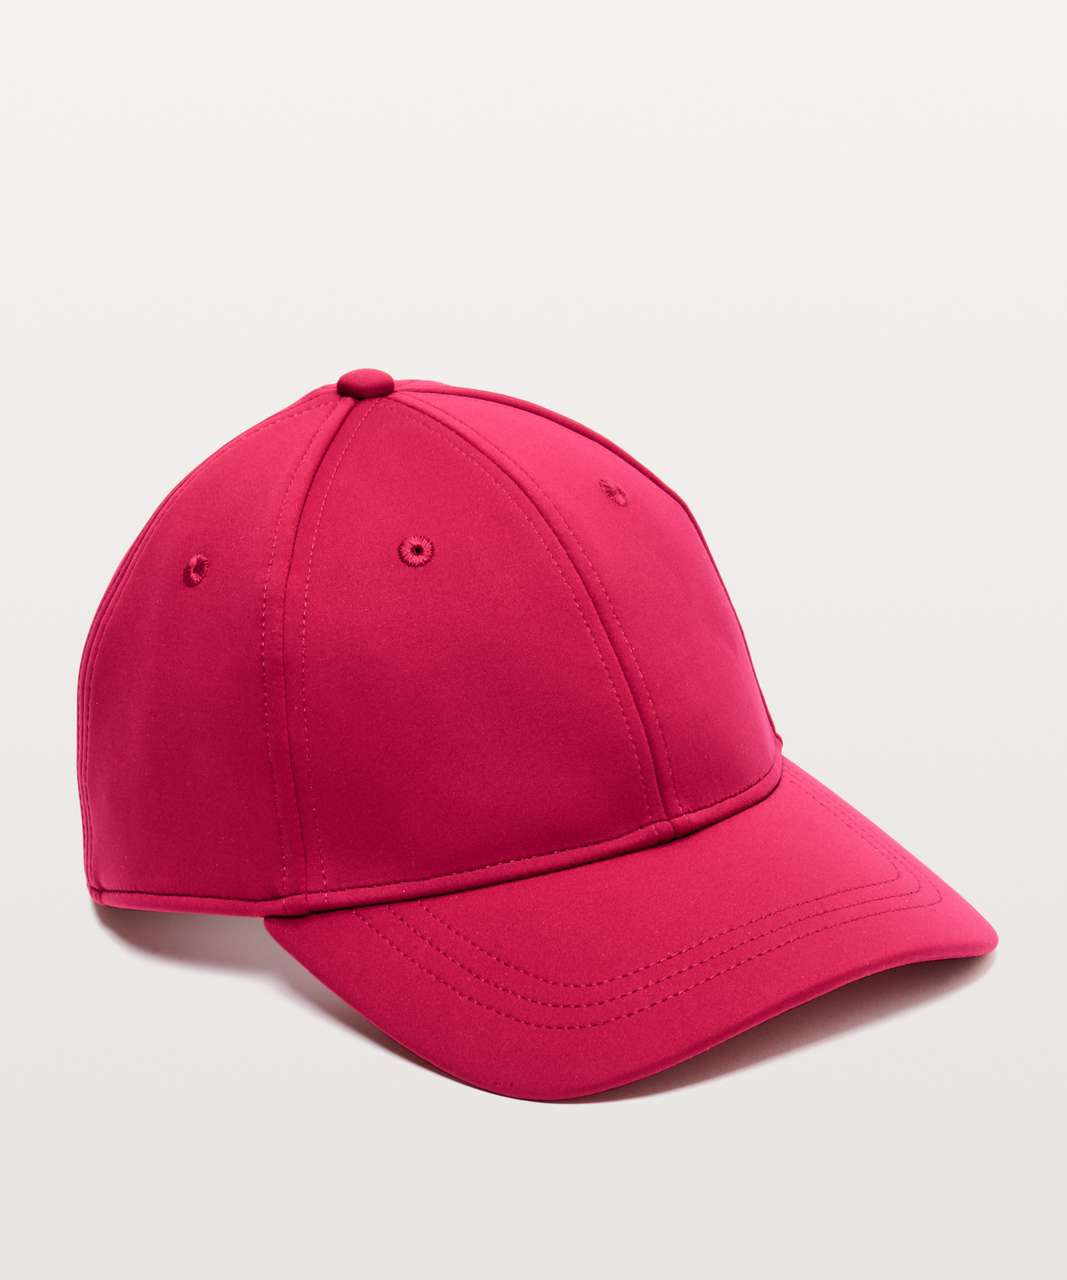 Lululemon Baller Hat - Ruby Red